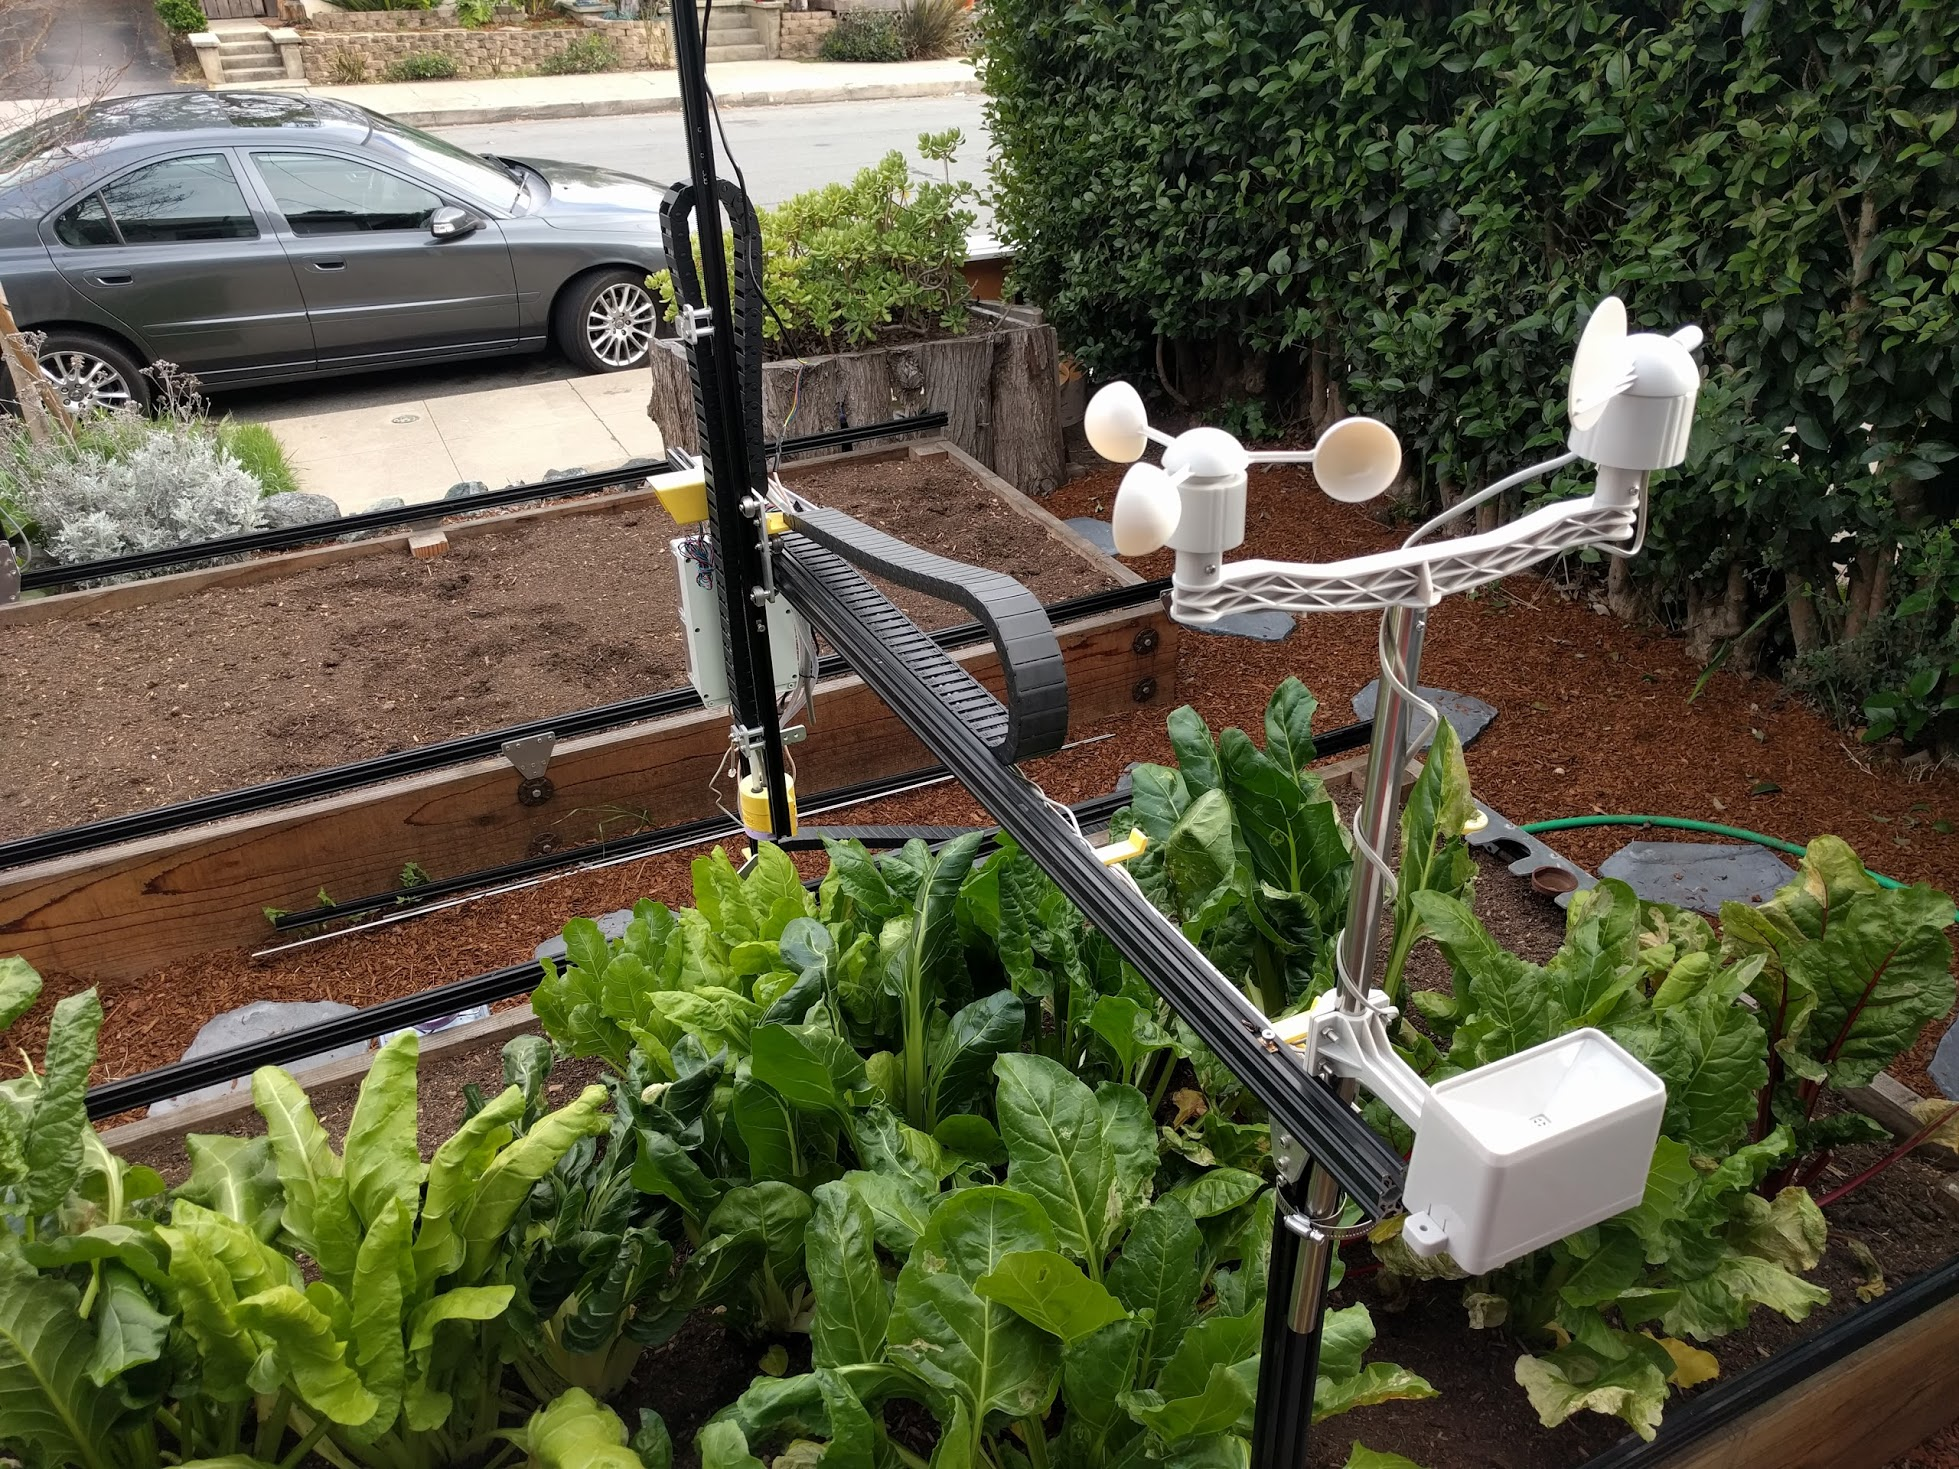 File:FarmBot Genesis Gantry And Weather Station